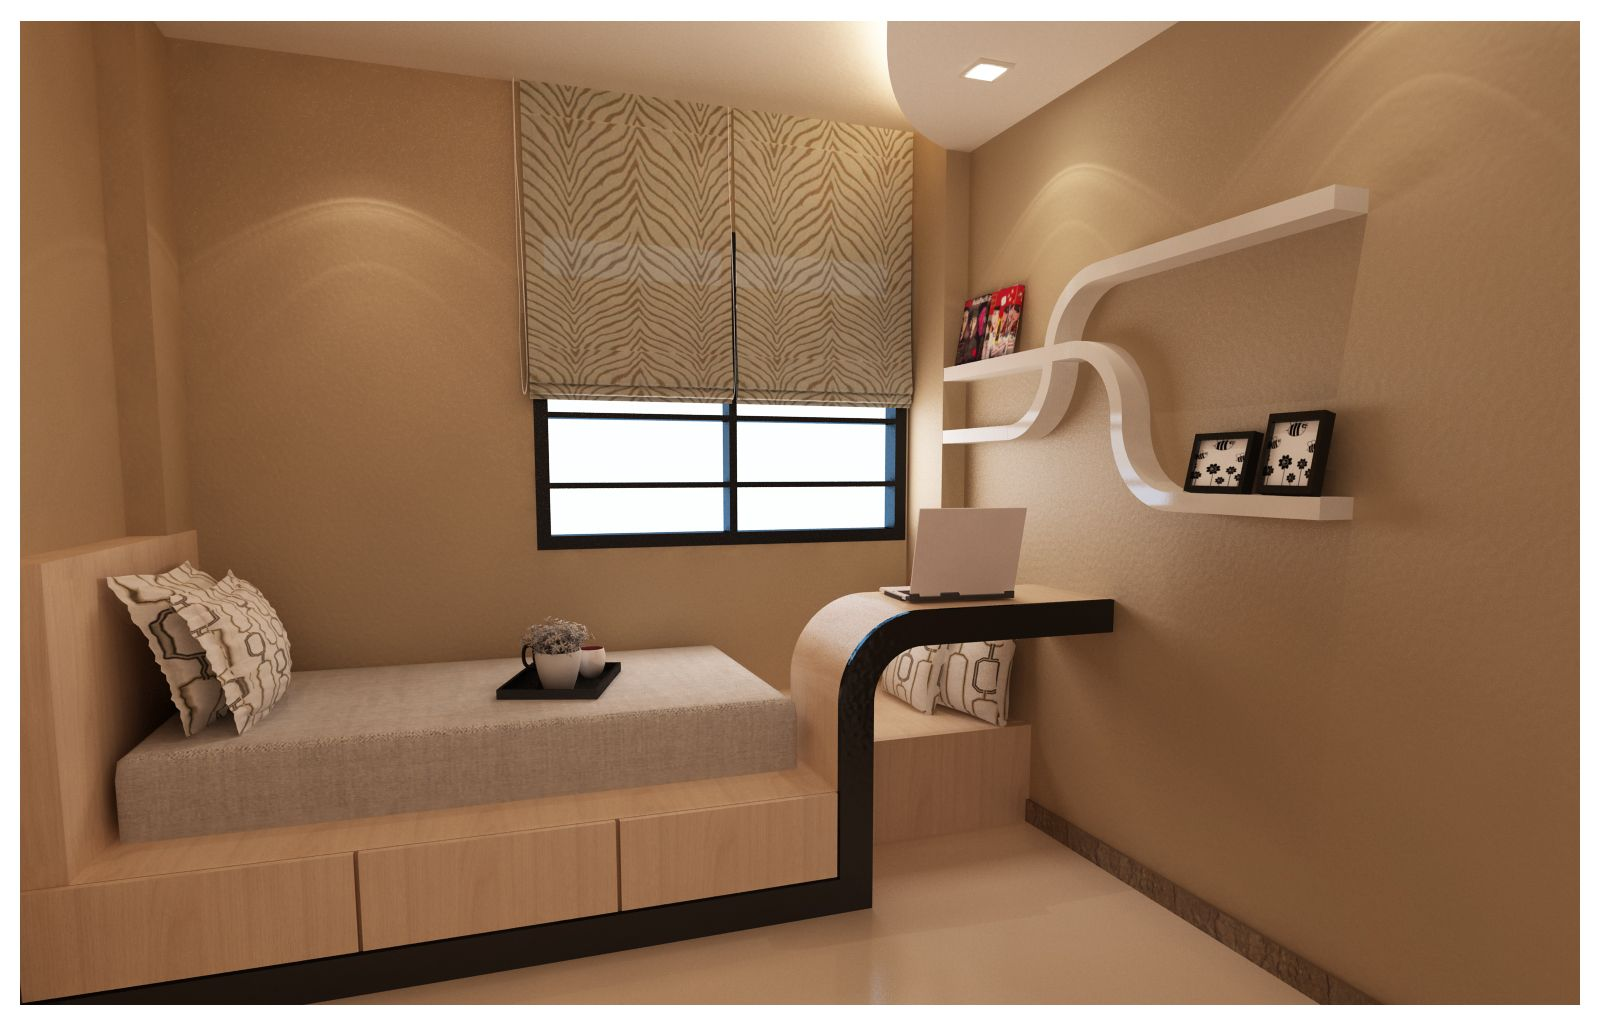 Bedroom interior design singapore 5